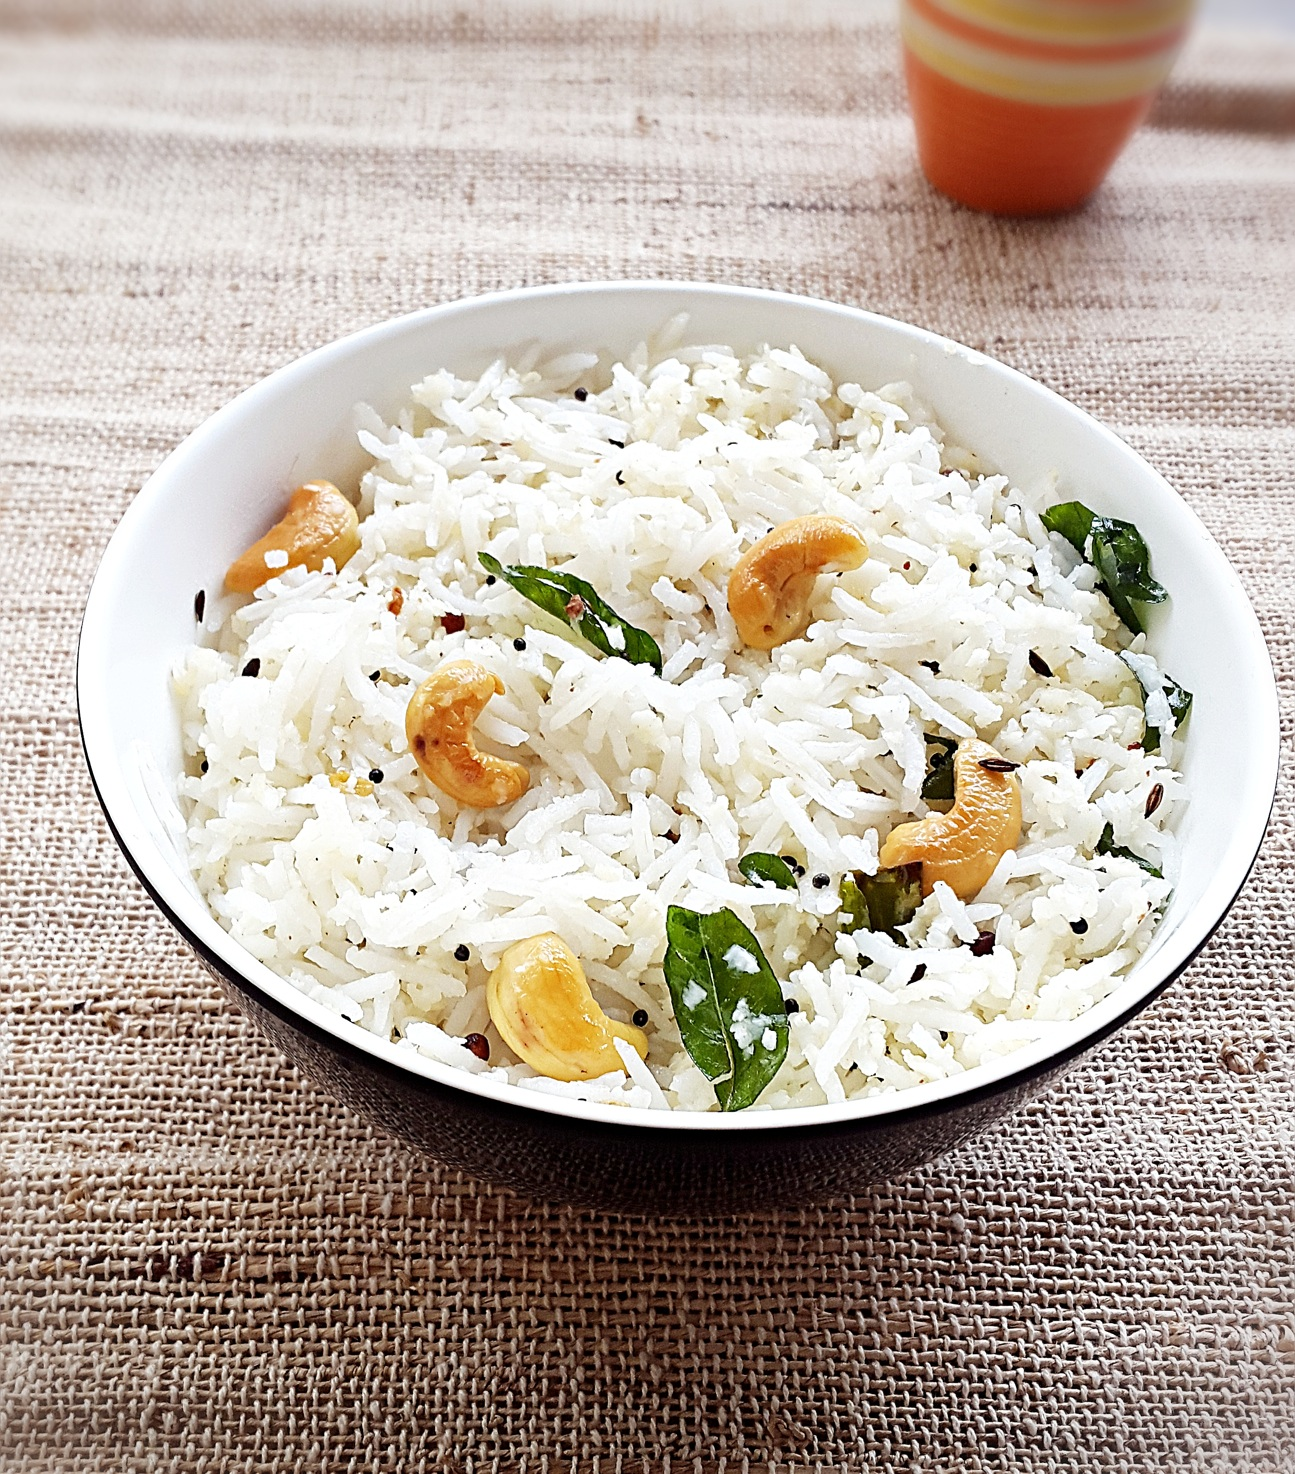 Coconut rice recipe - How to make easy Indian coconut rice ...